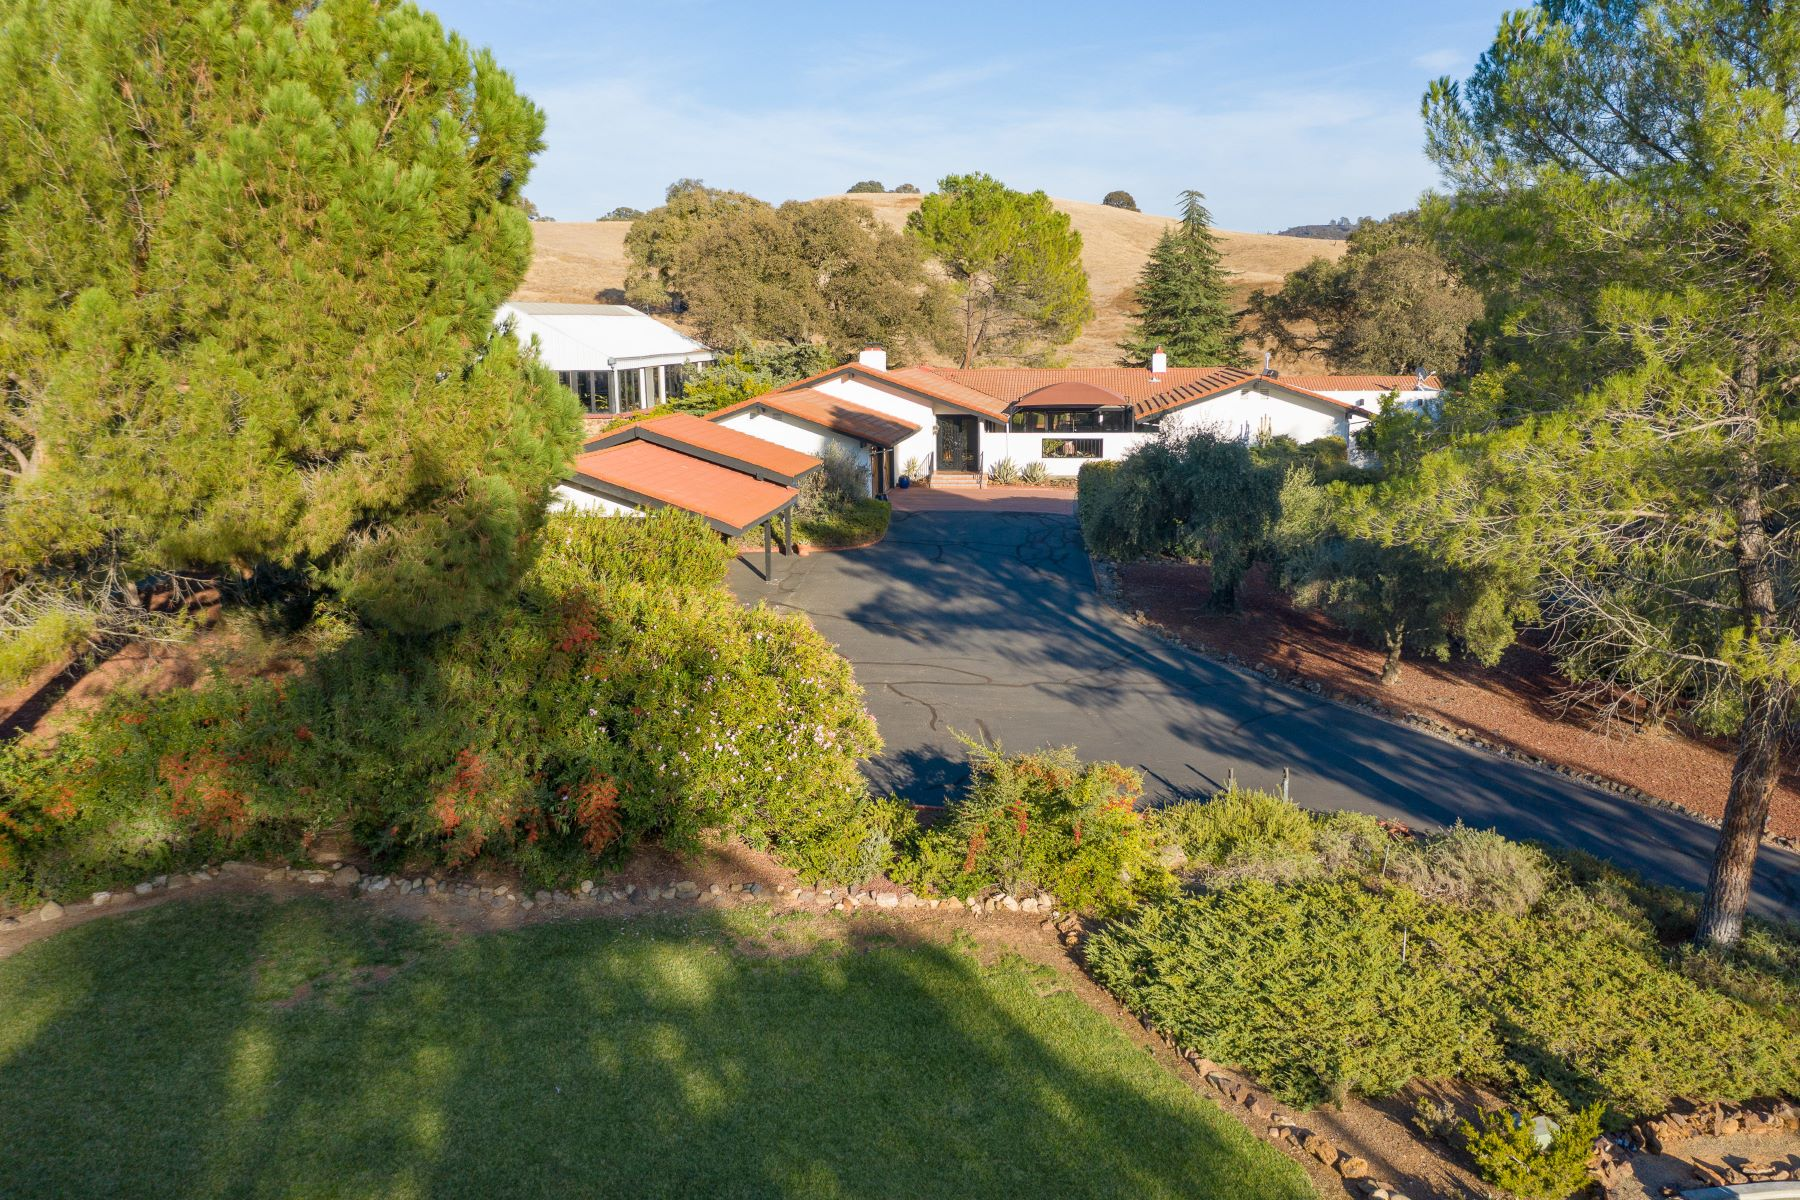 Farm / Ranch / Plantation for Active at Spanish Revival Estate Located on 60 Sprawling Acres 6100 Gassner Road Burson, California 95225 United States